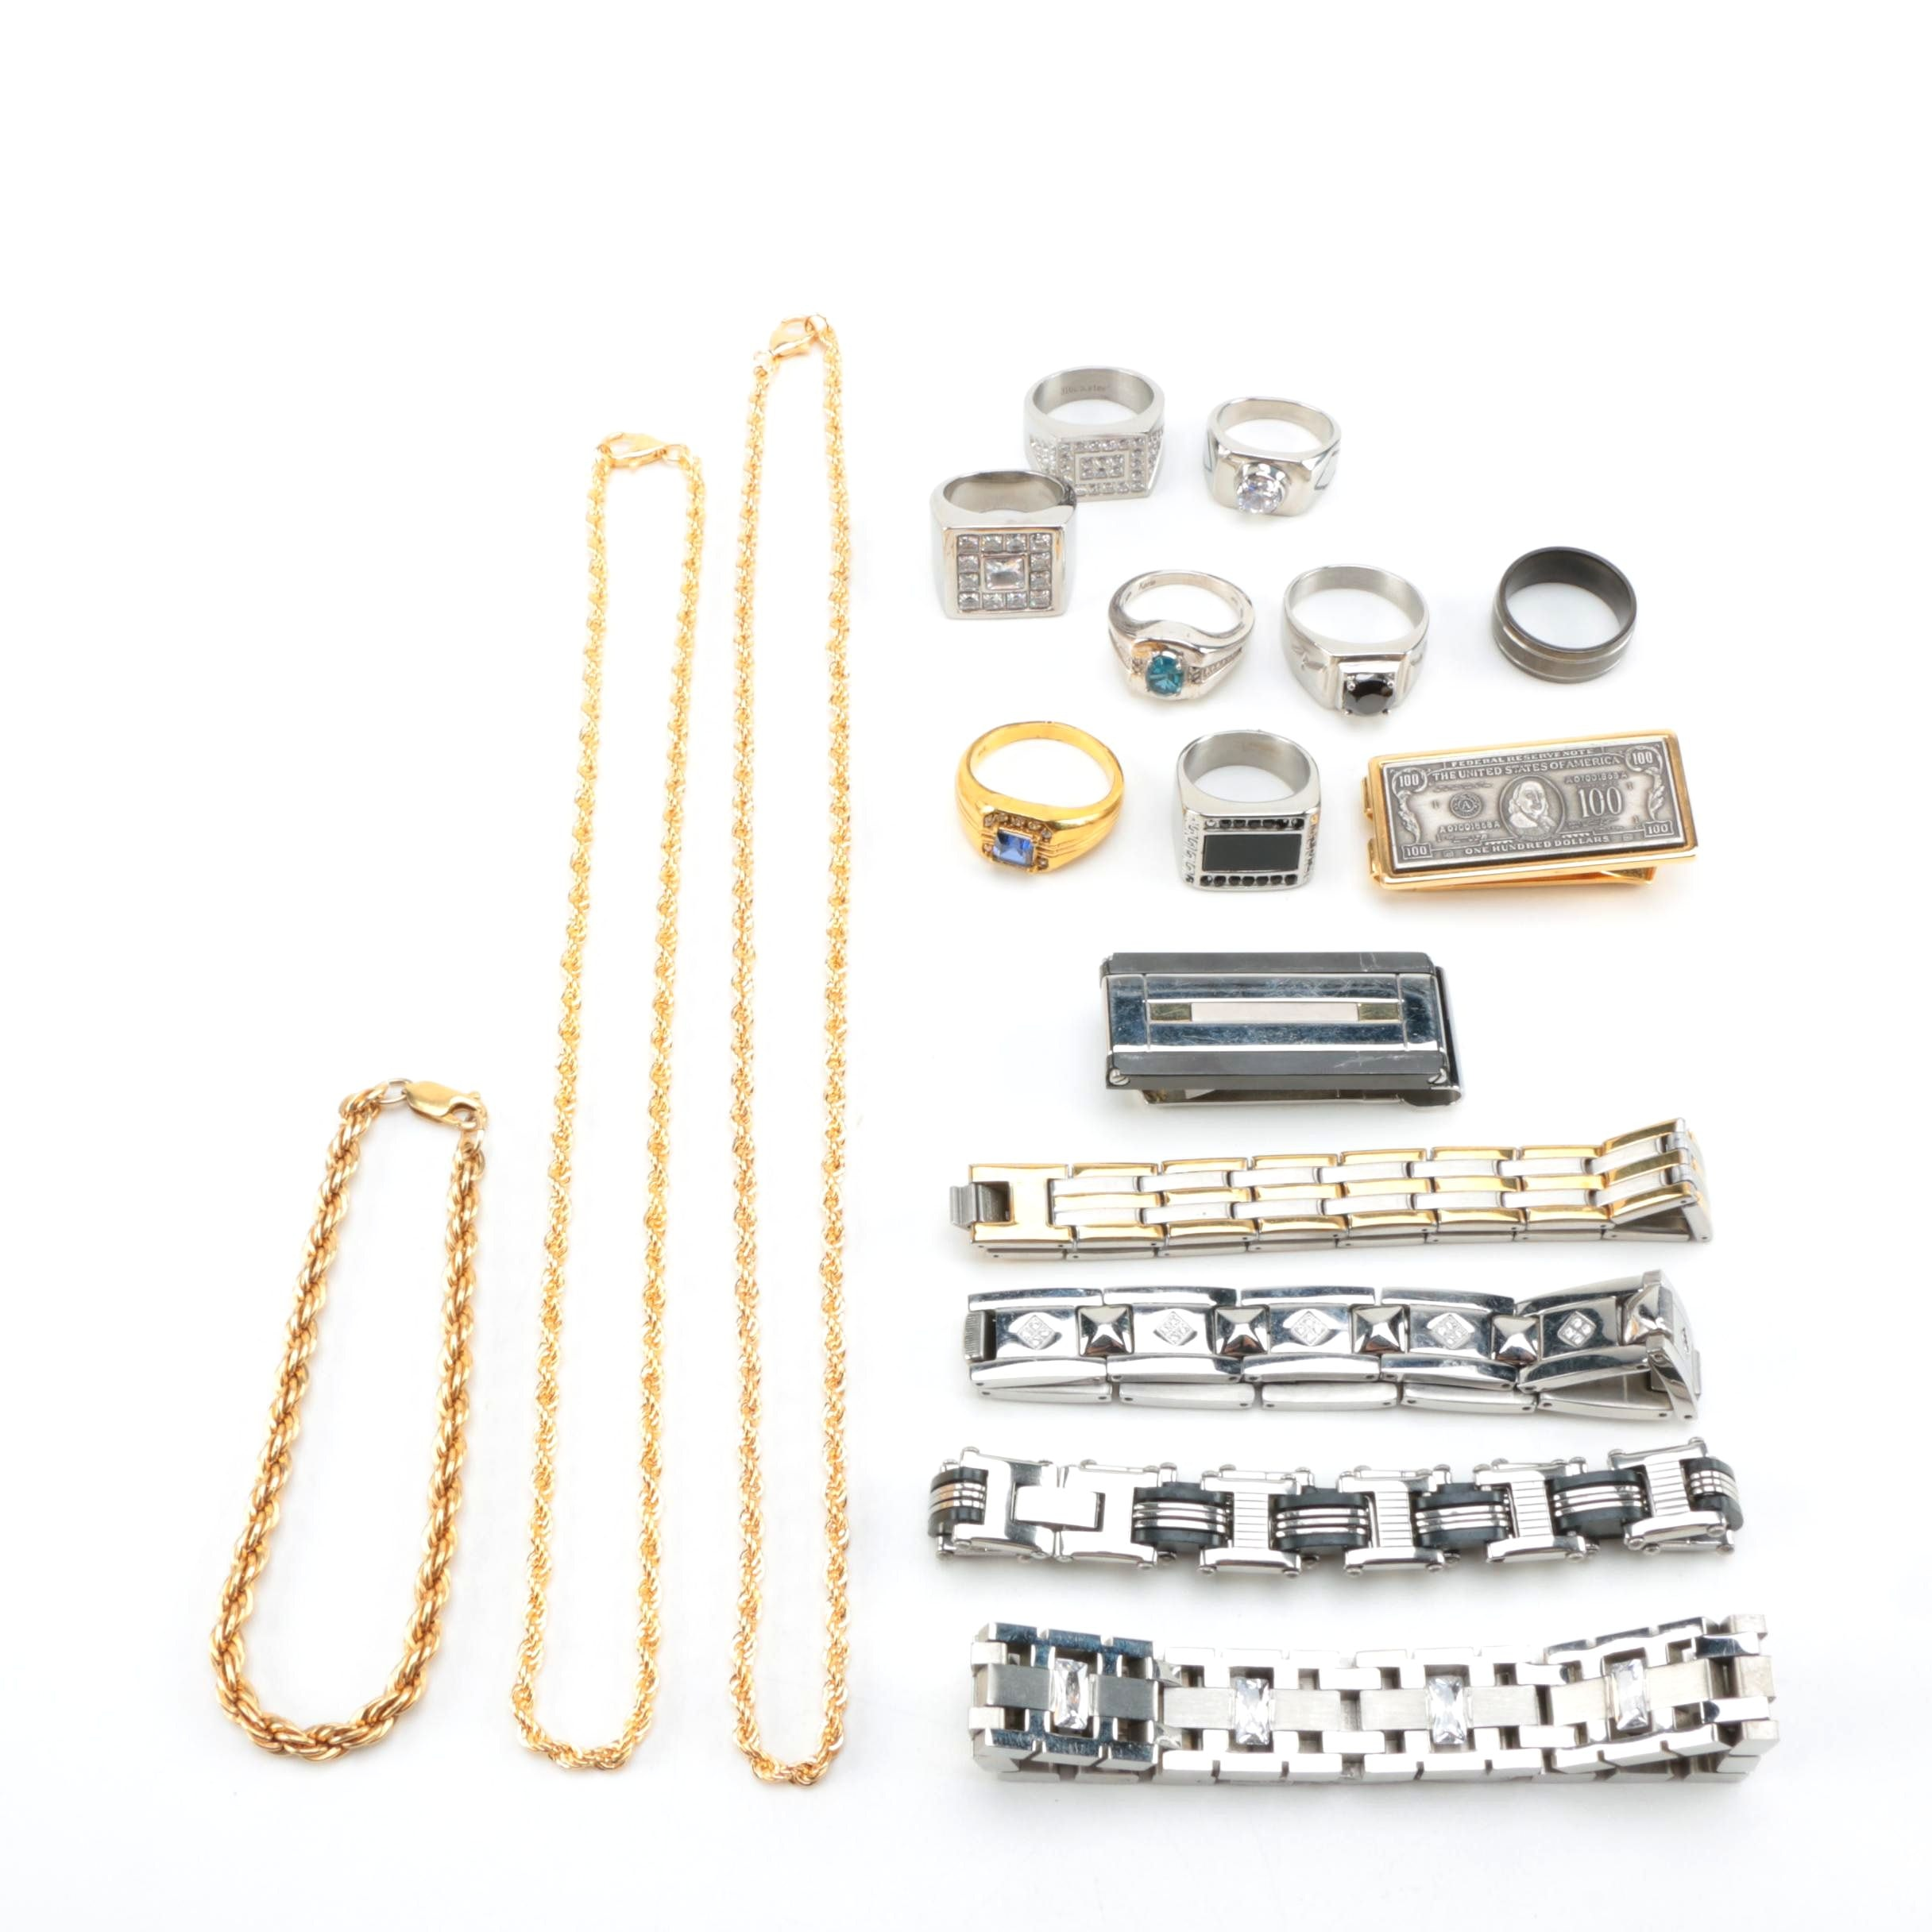 Men's Titanium, Stainless Steel, and Gold Plated Jewelry with Topaz